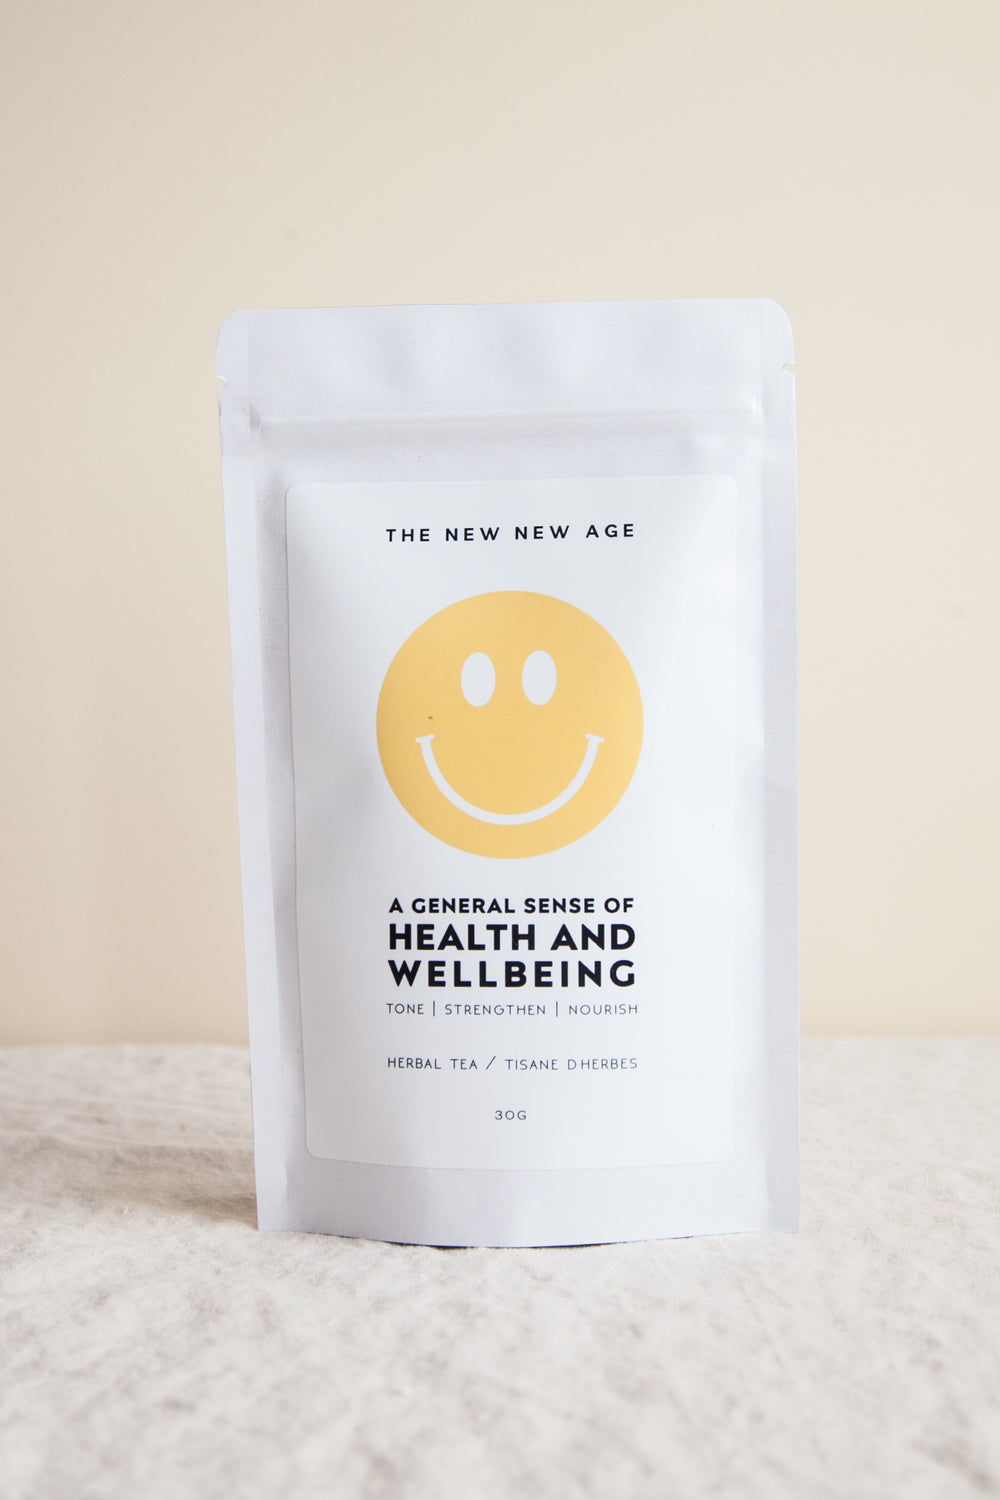 Health and Wellbeing Tonic Tea